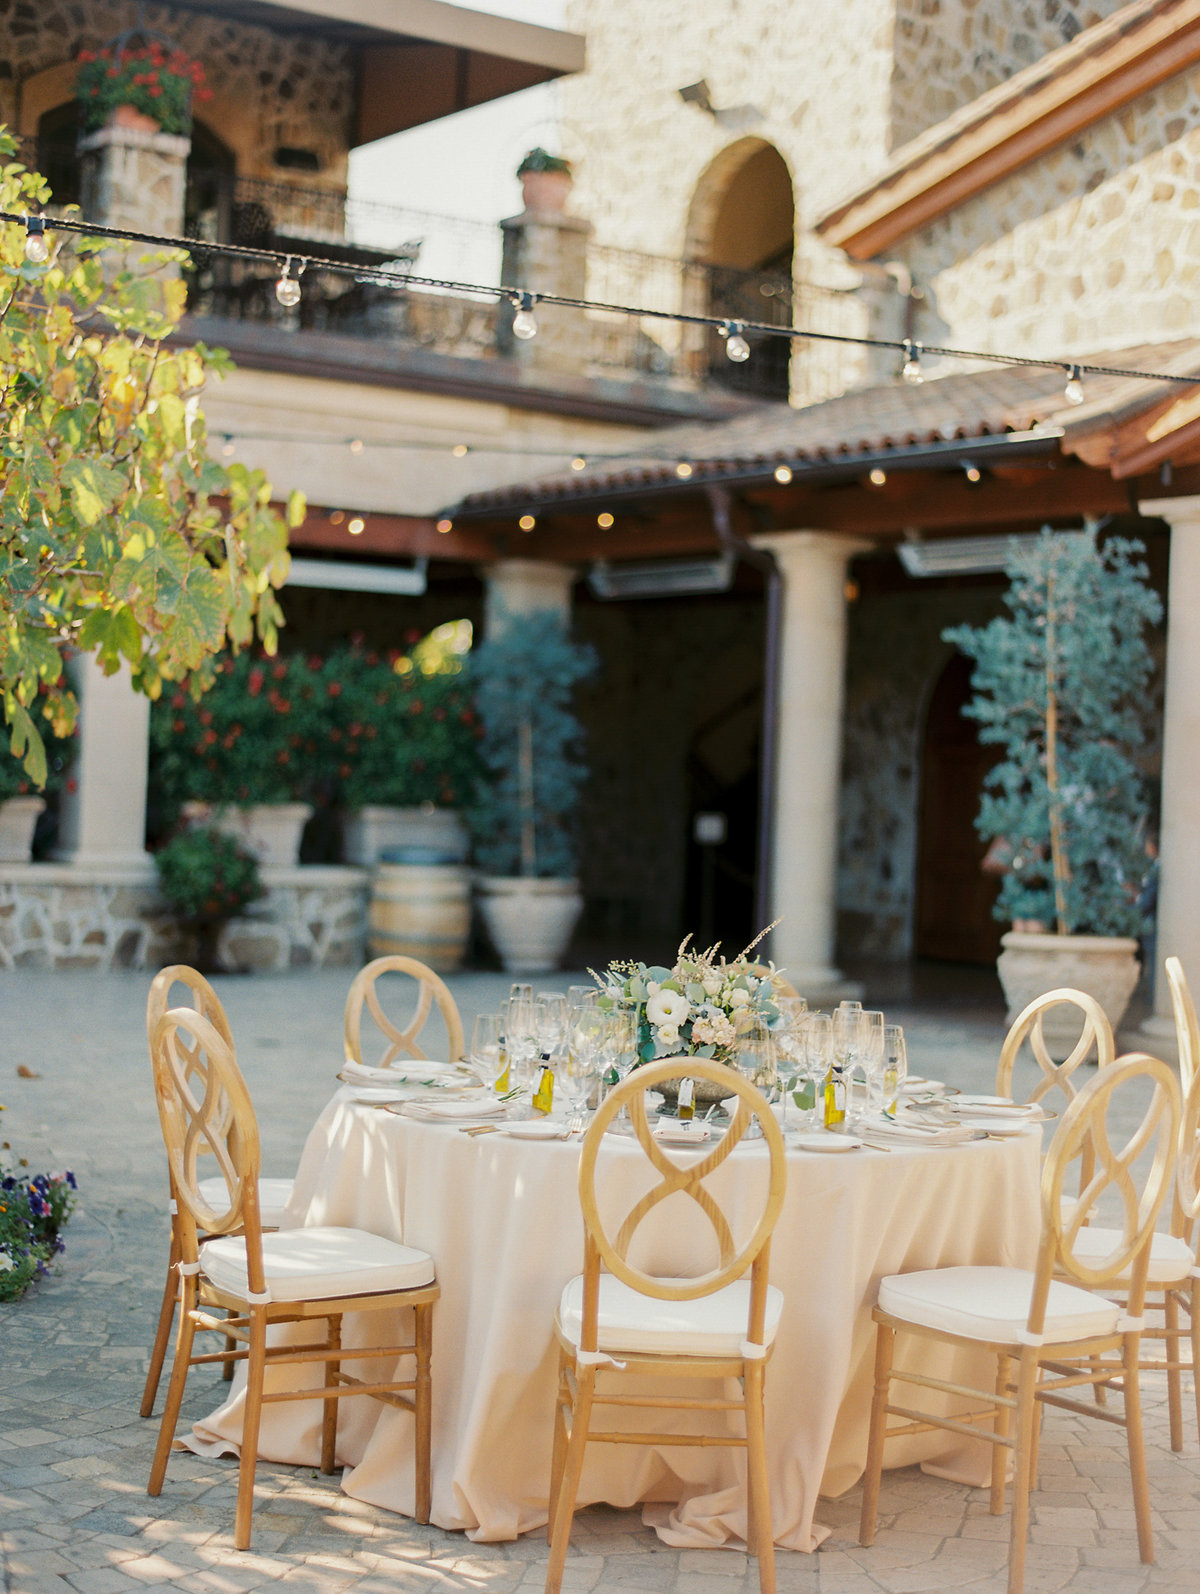 Natalie Bray Studios, Natalie Bray Photography, Southern California Wedding Photographer, Fine Art wedding, Destination Wedding Photographer, Sonoma Wedding Photographer-40